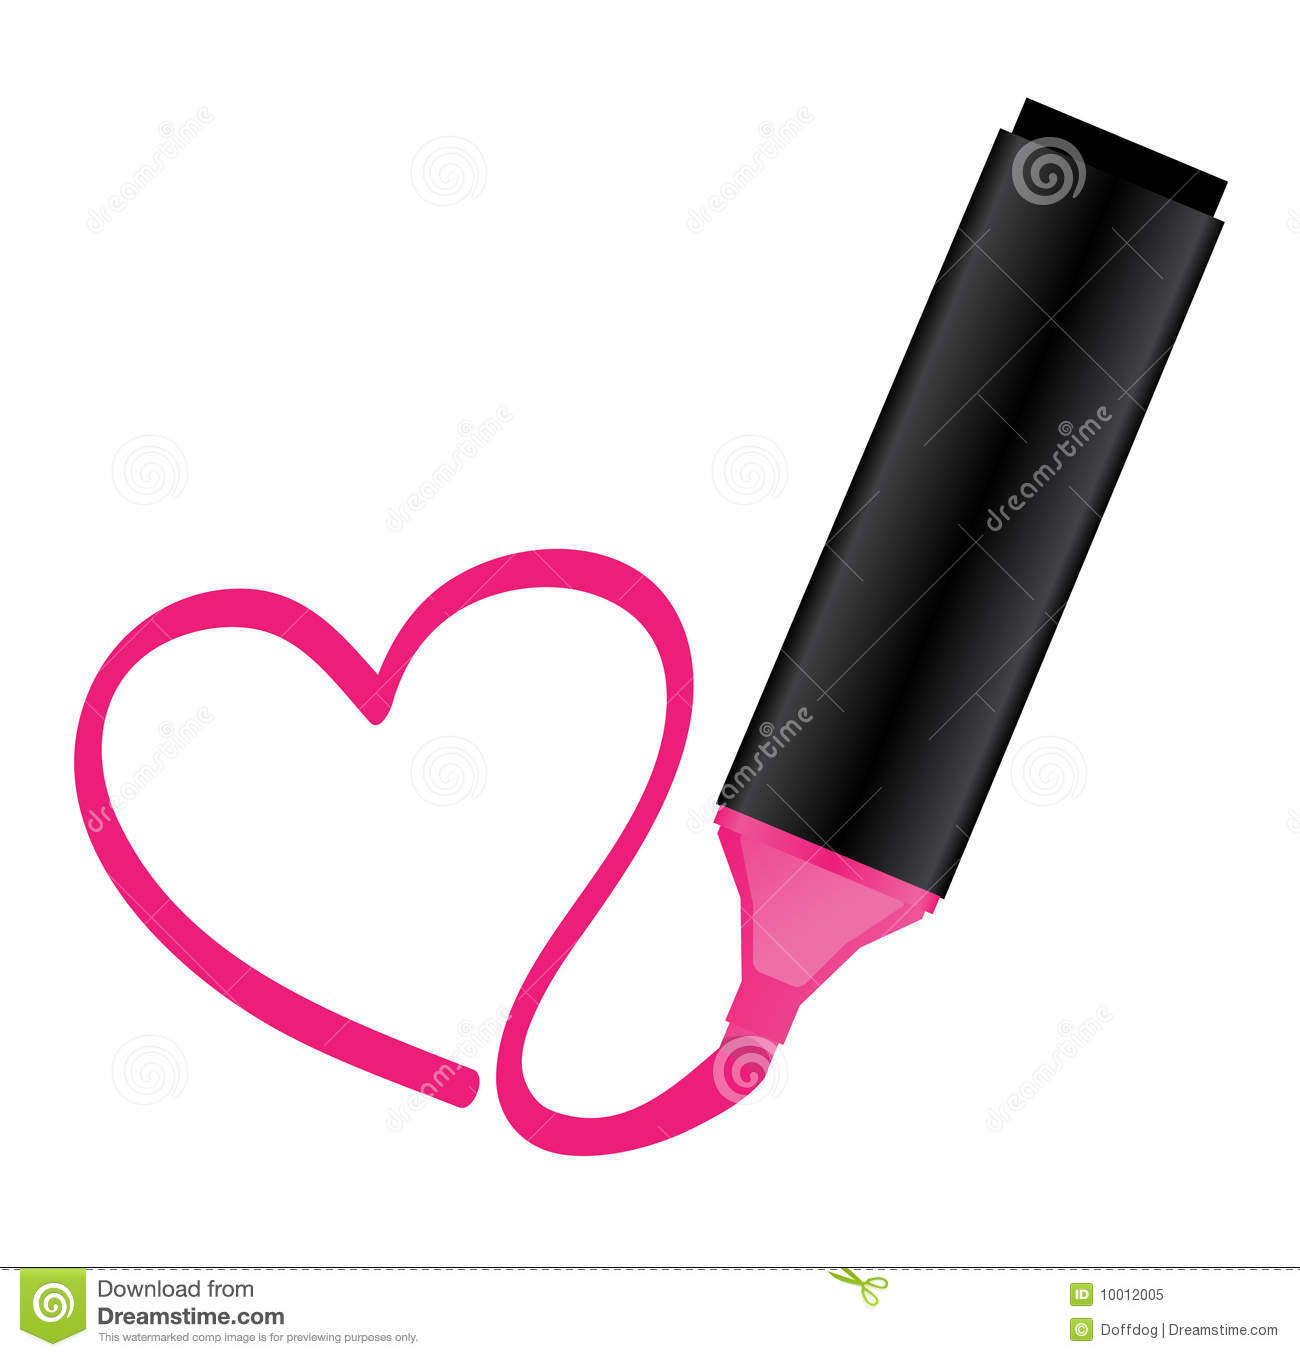 map of united states with labels with Royalty Free Stock Photo Pink Highlighter Heart Image10012005 on Illustration Stock Manhattan Inf C3 A9rieure Et Mi De Carte De New York Image58025278 additionally Polyphyllus likewise Custom Rhode Island Shaped Mag further 20q furthermore Stock Photography Vector Black Usb Icons Set White Background Image39582962.